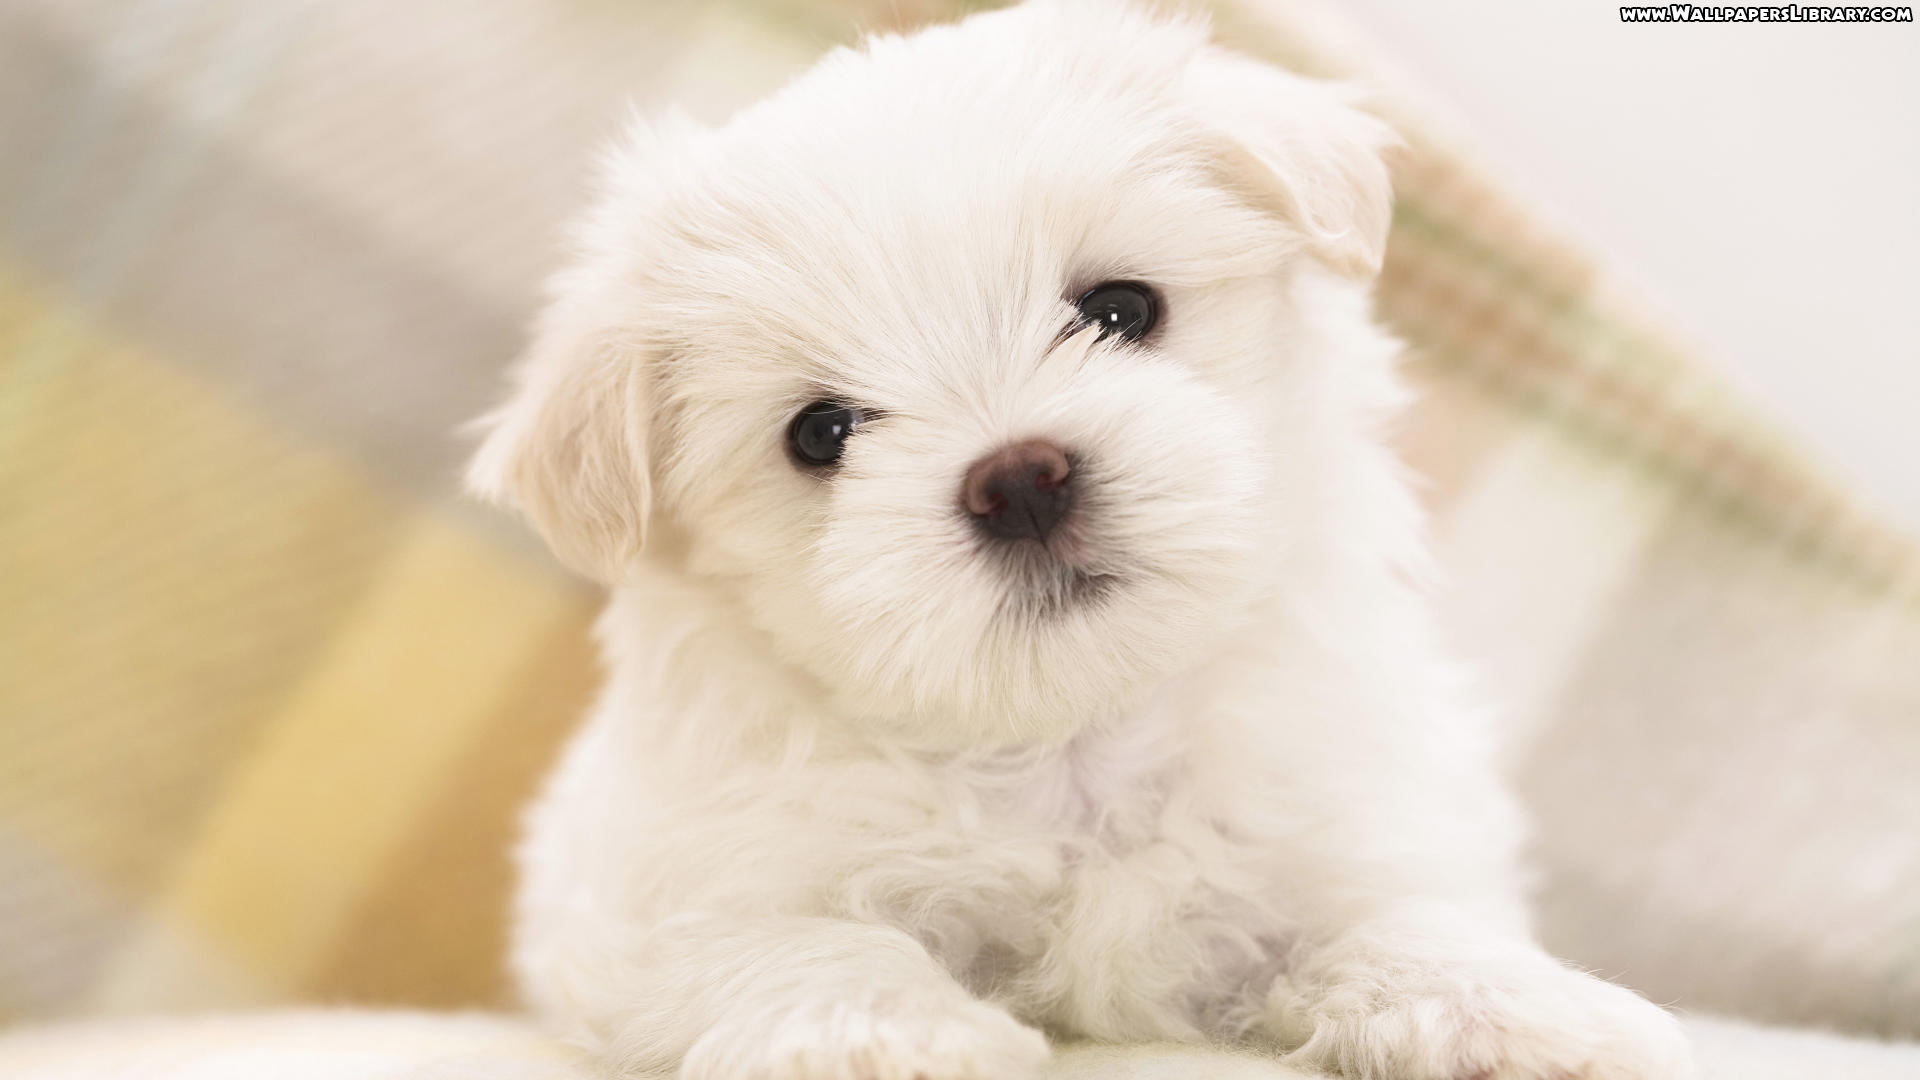 Cute Puppies #14